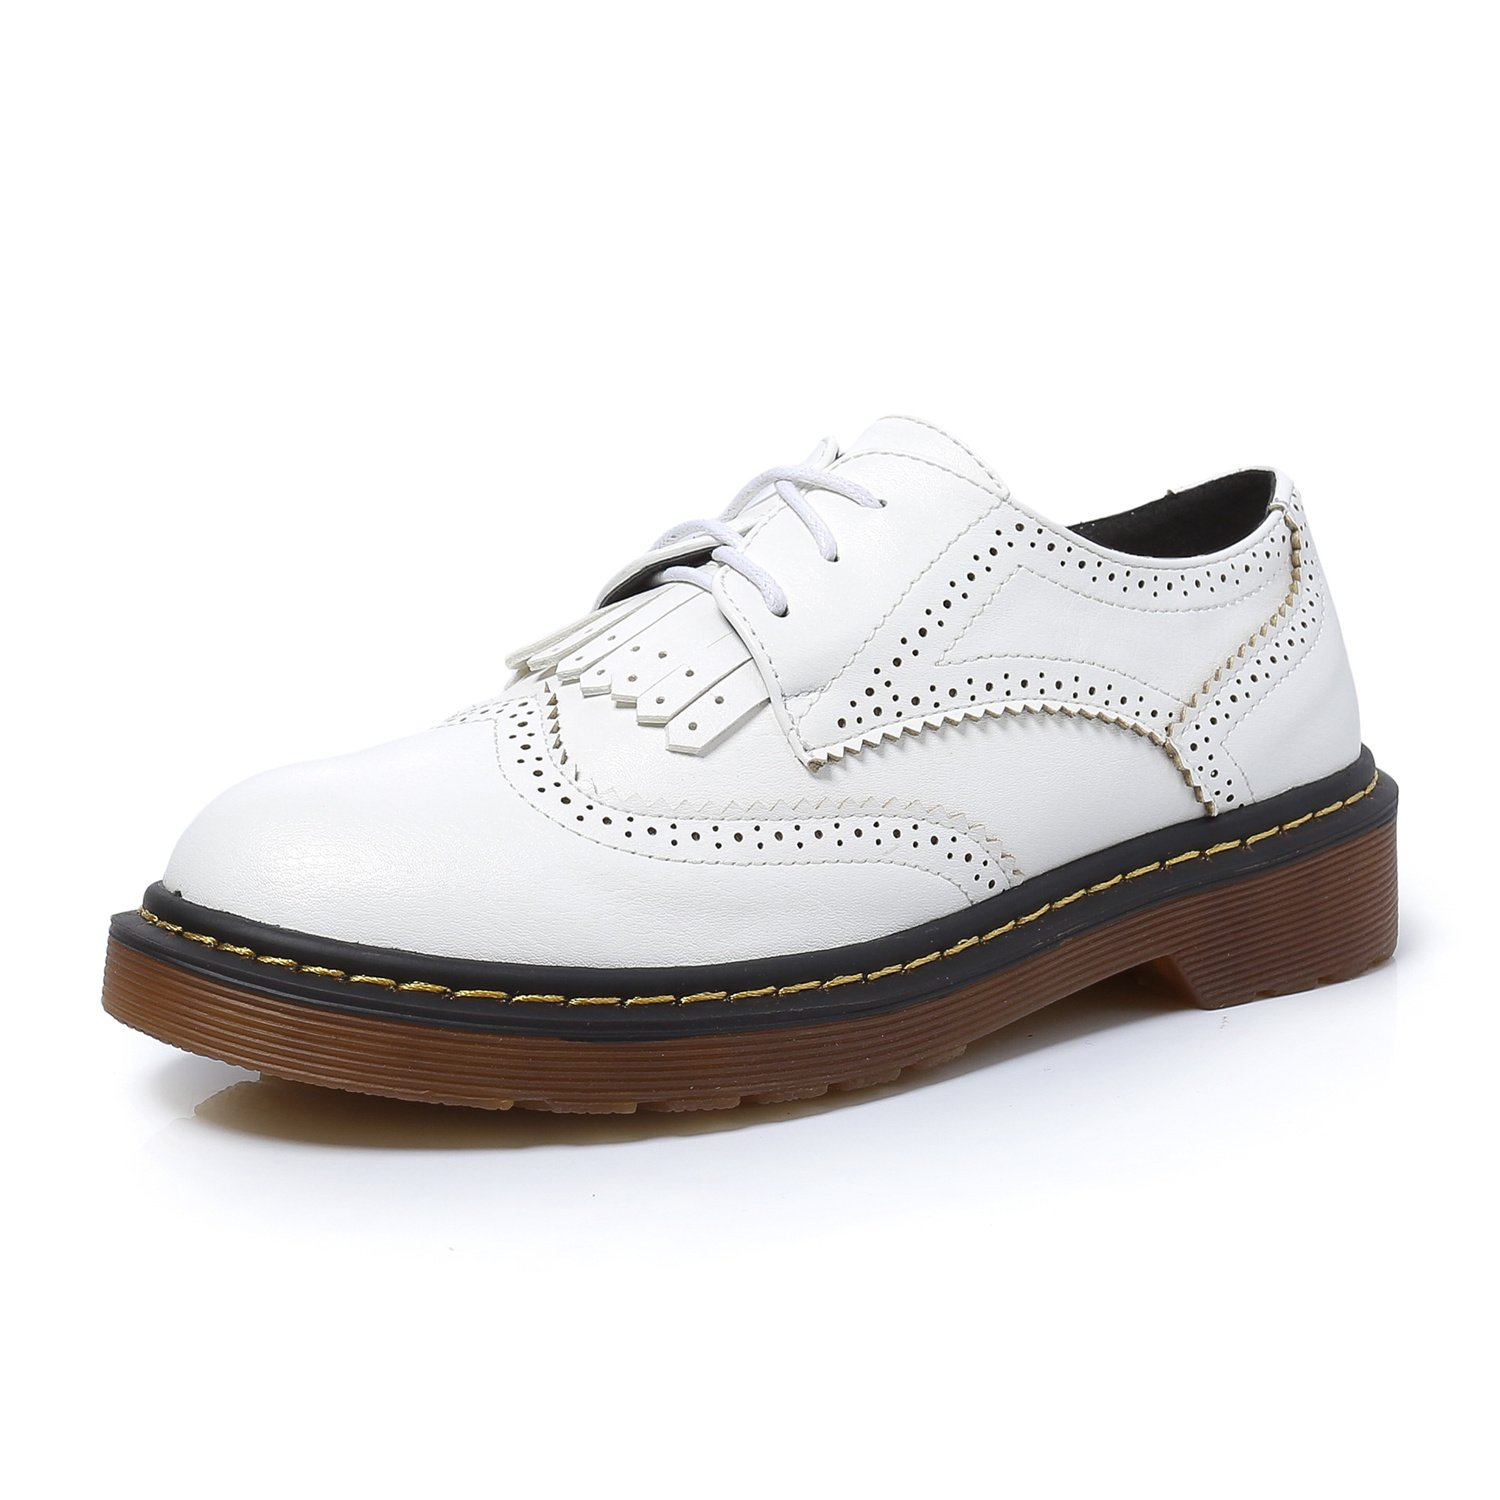 Smilun Lady/¡/¯s Full Brogues Classic Lace-up Flats Tassel Fringe Round Toe